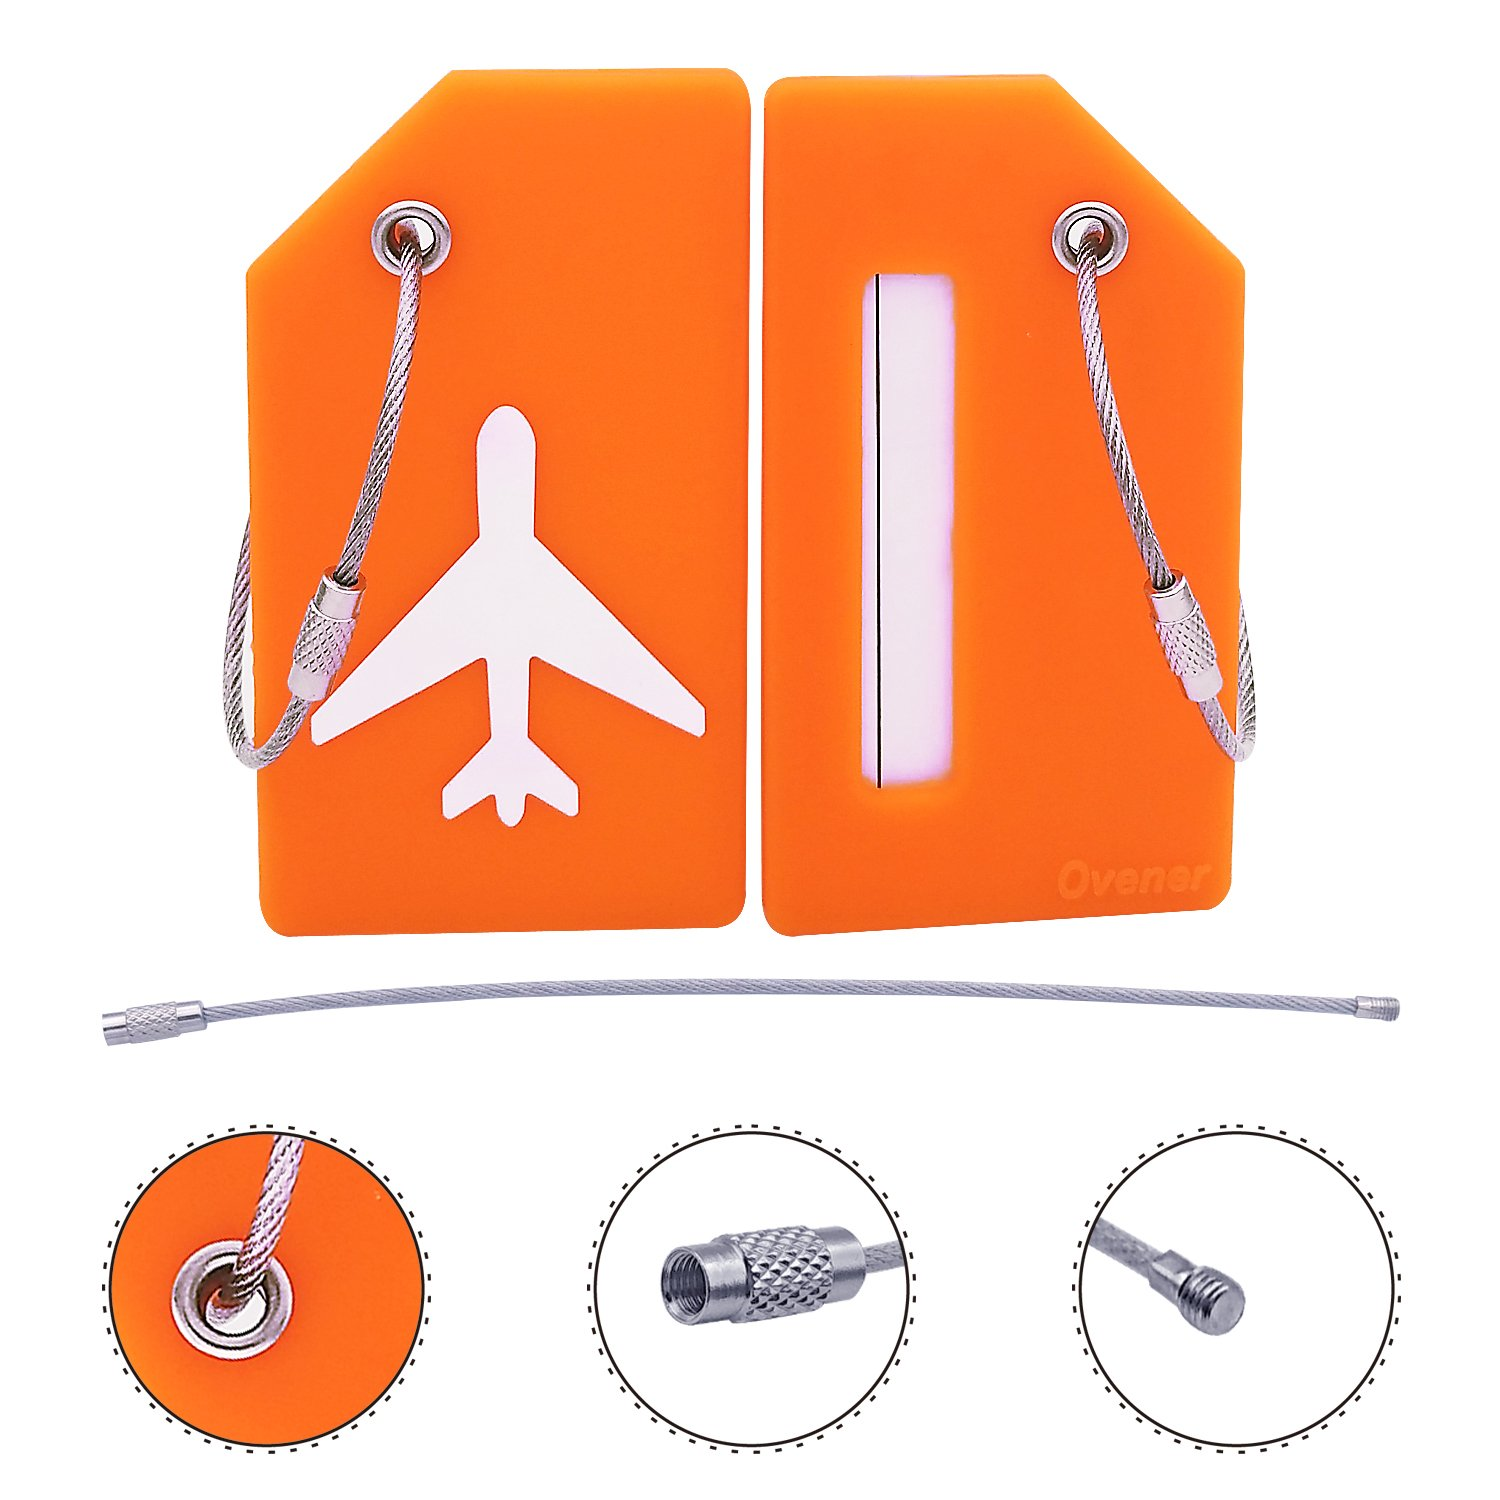 Silicone Luggage Tag With Name ID Card Perfect to Quickly Spot Luggage Suitcase (Plane 2Pcs Orange) by Ovener (Image #4)